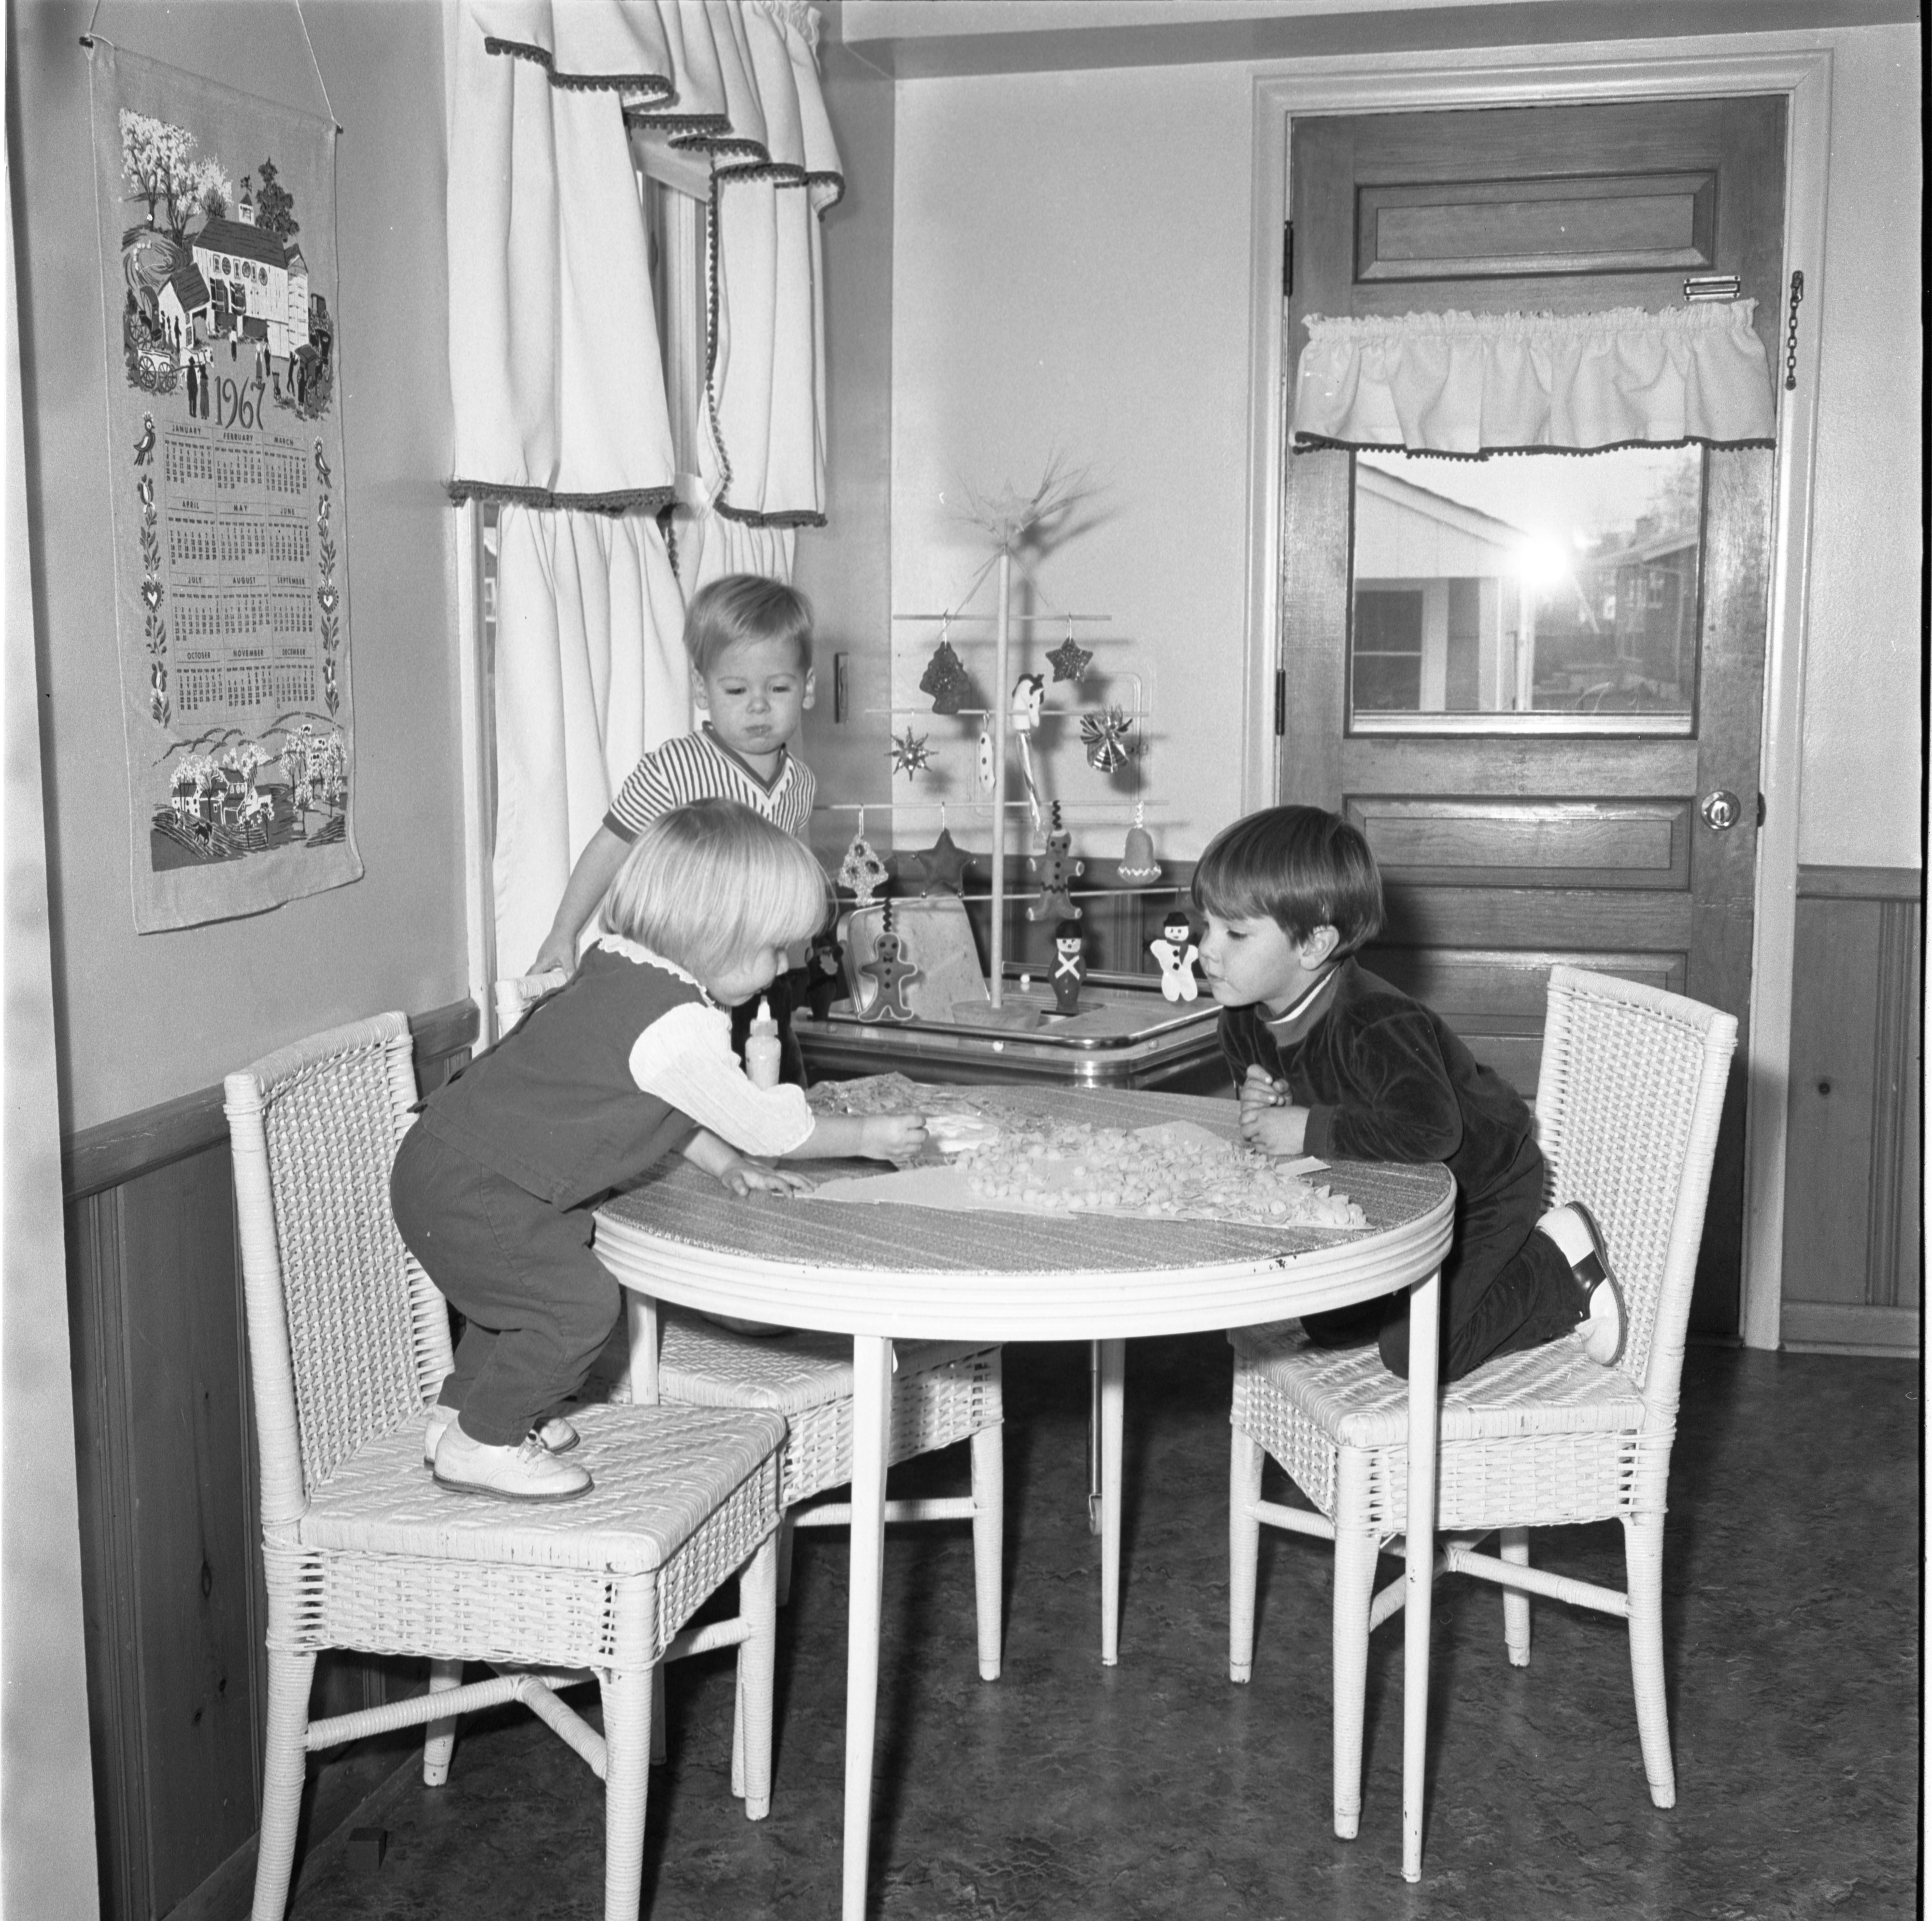 Tricia McNaughton, Andrew Hartzell, & Jamie McNaughton Make Christmas Decorations, November 1967 image